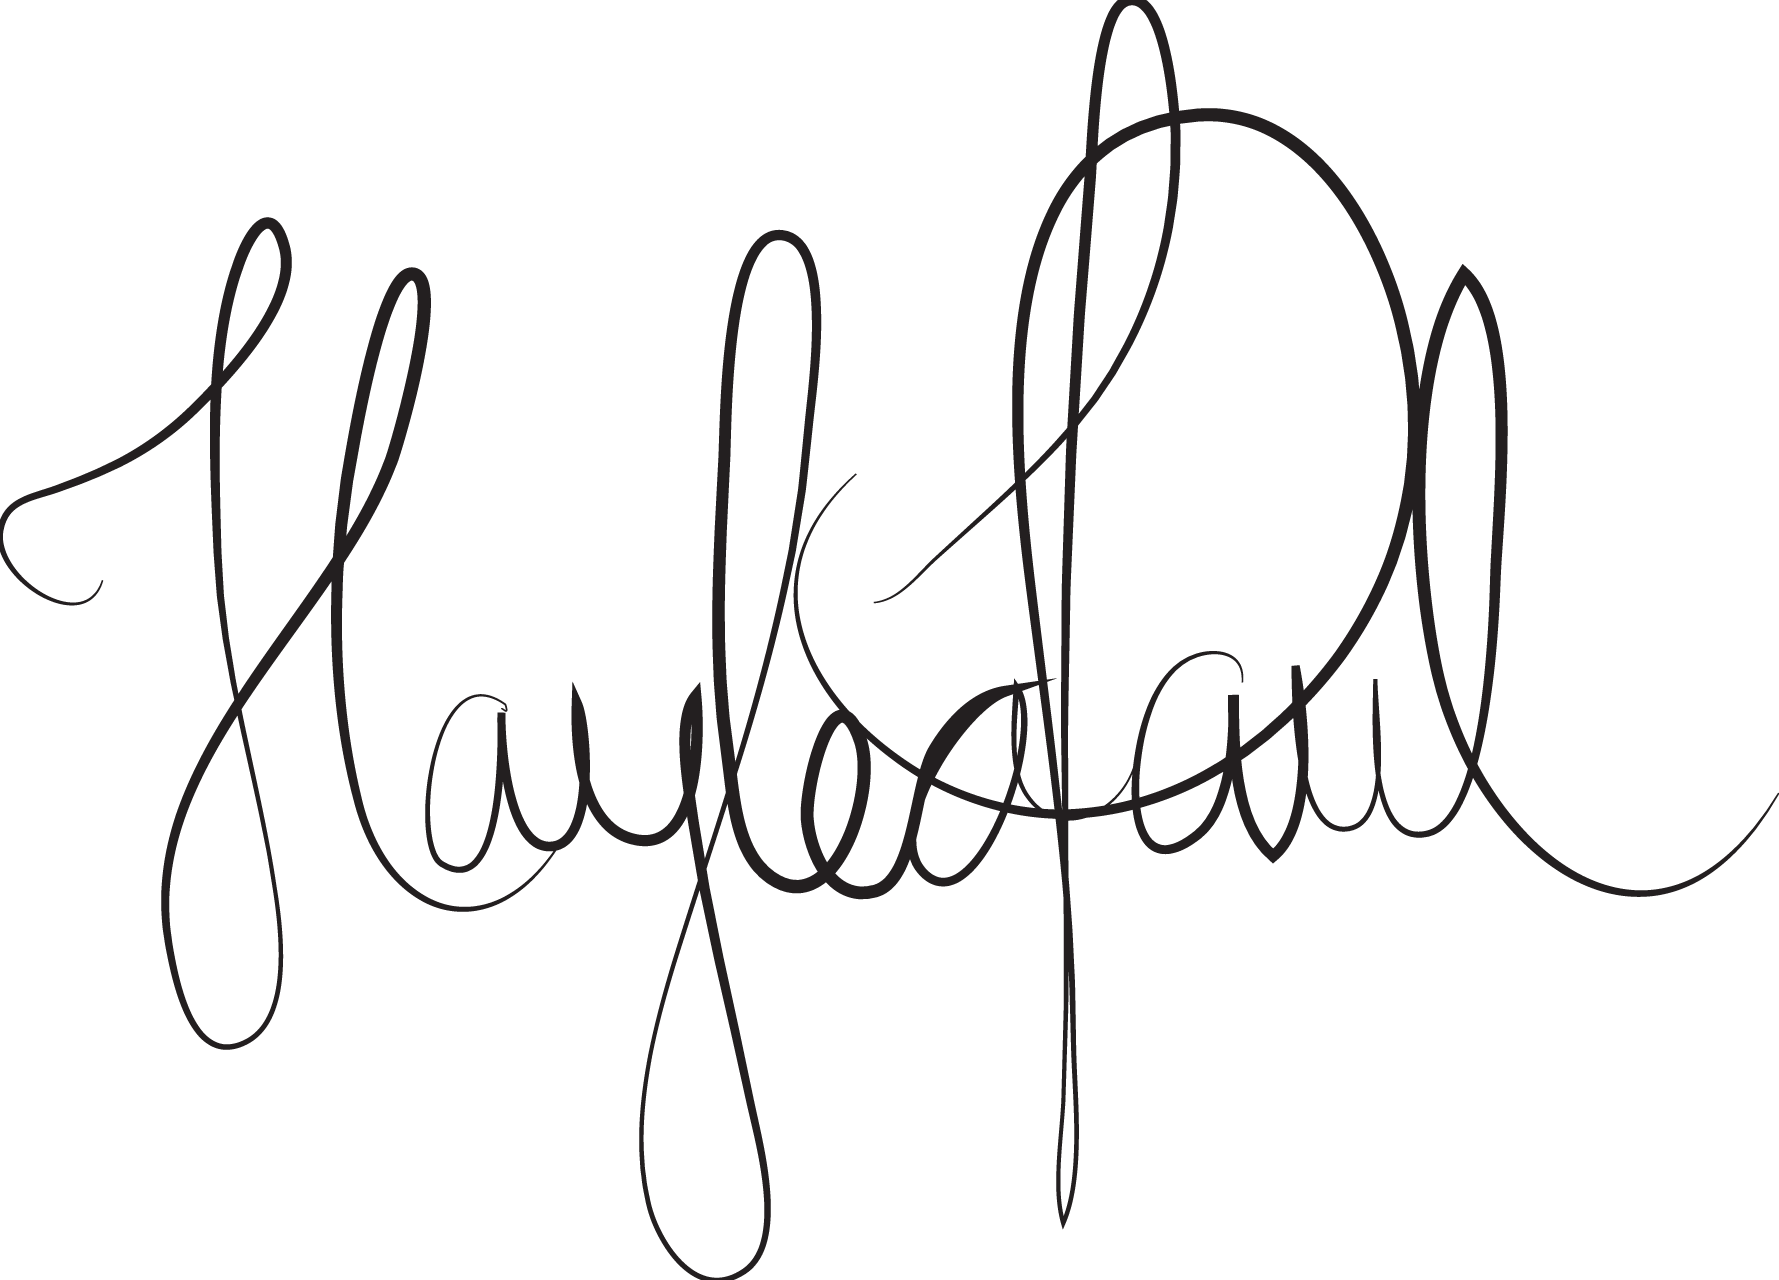 haylea paul's Signature